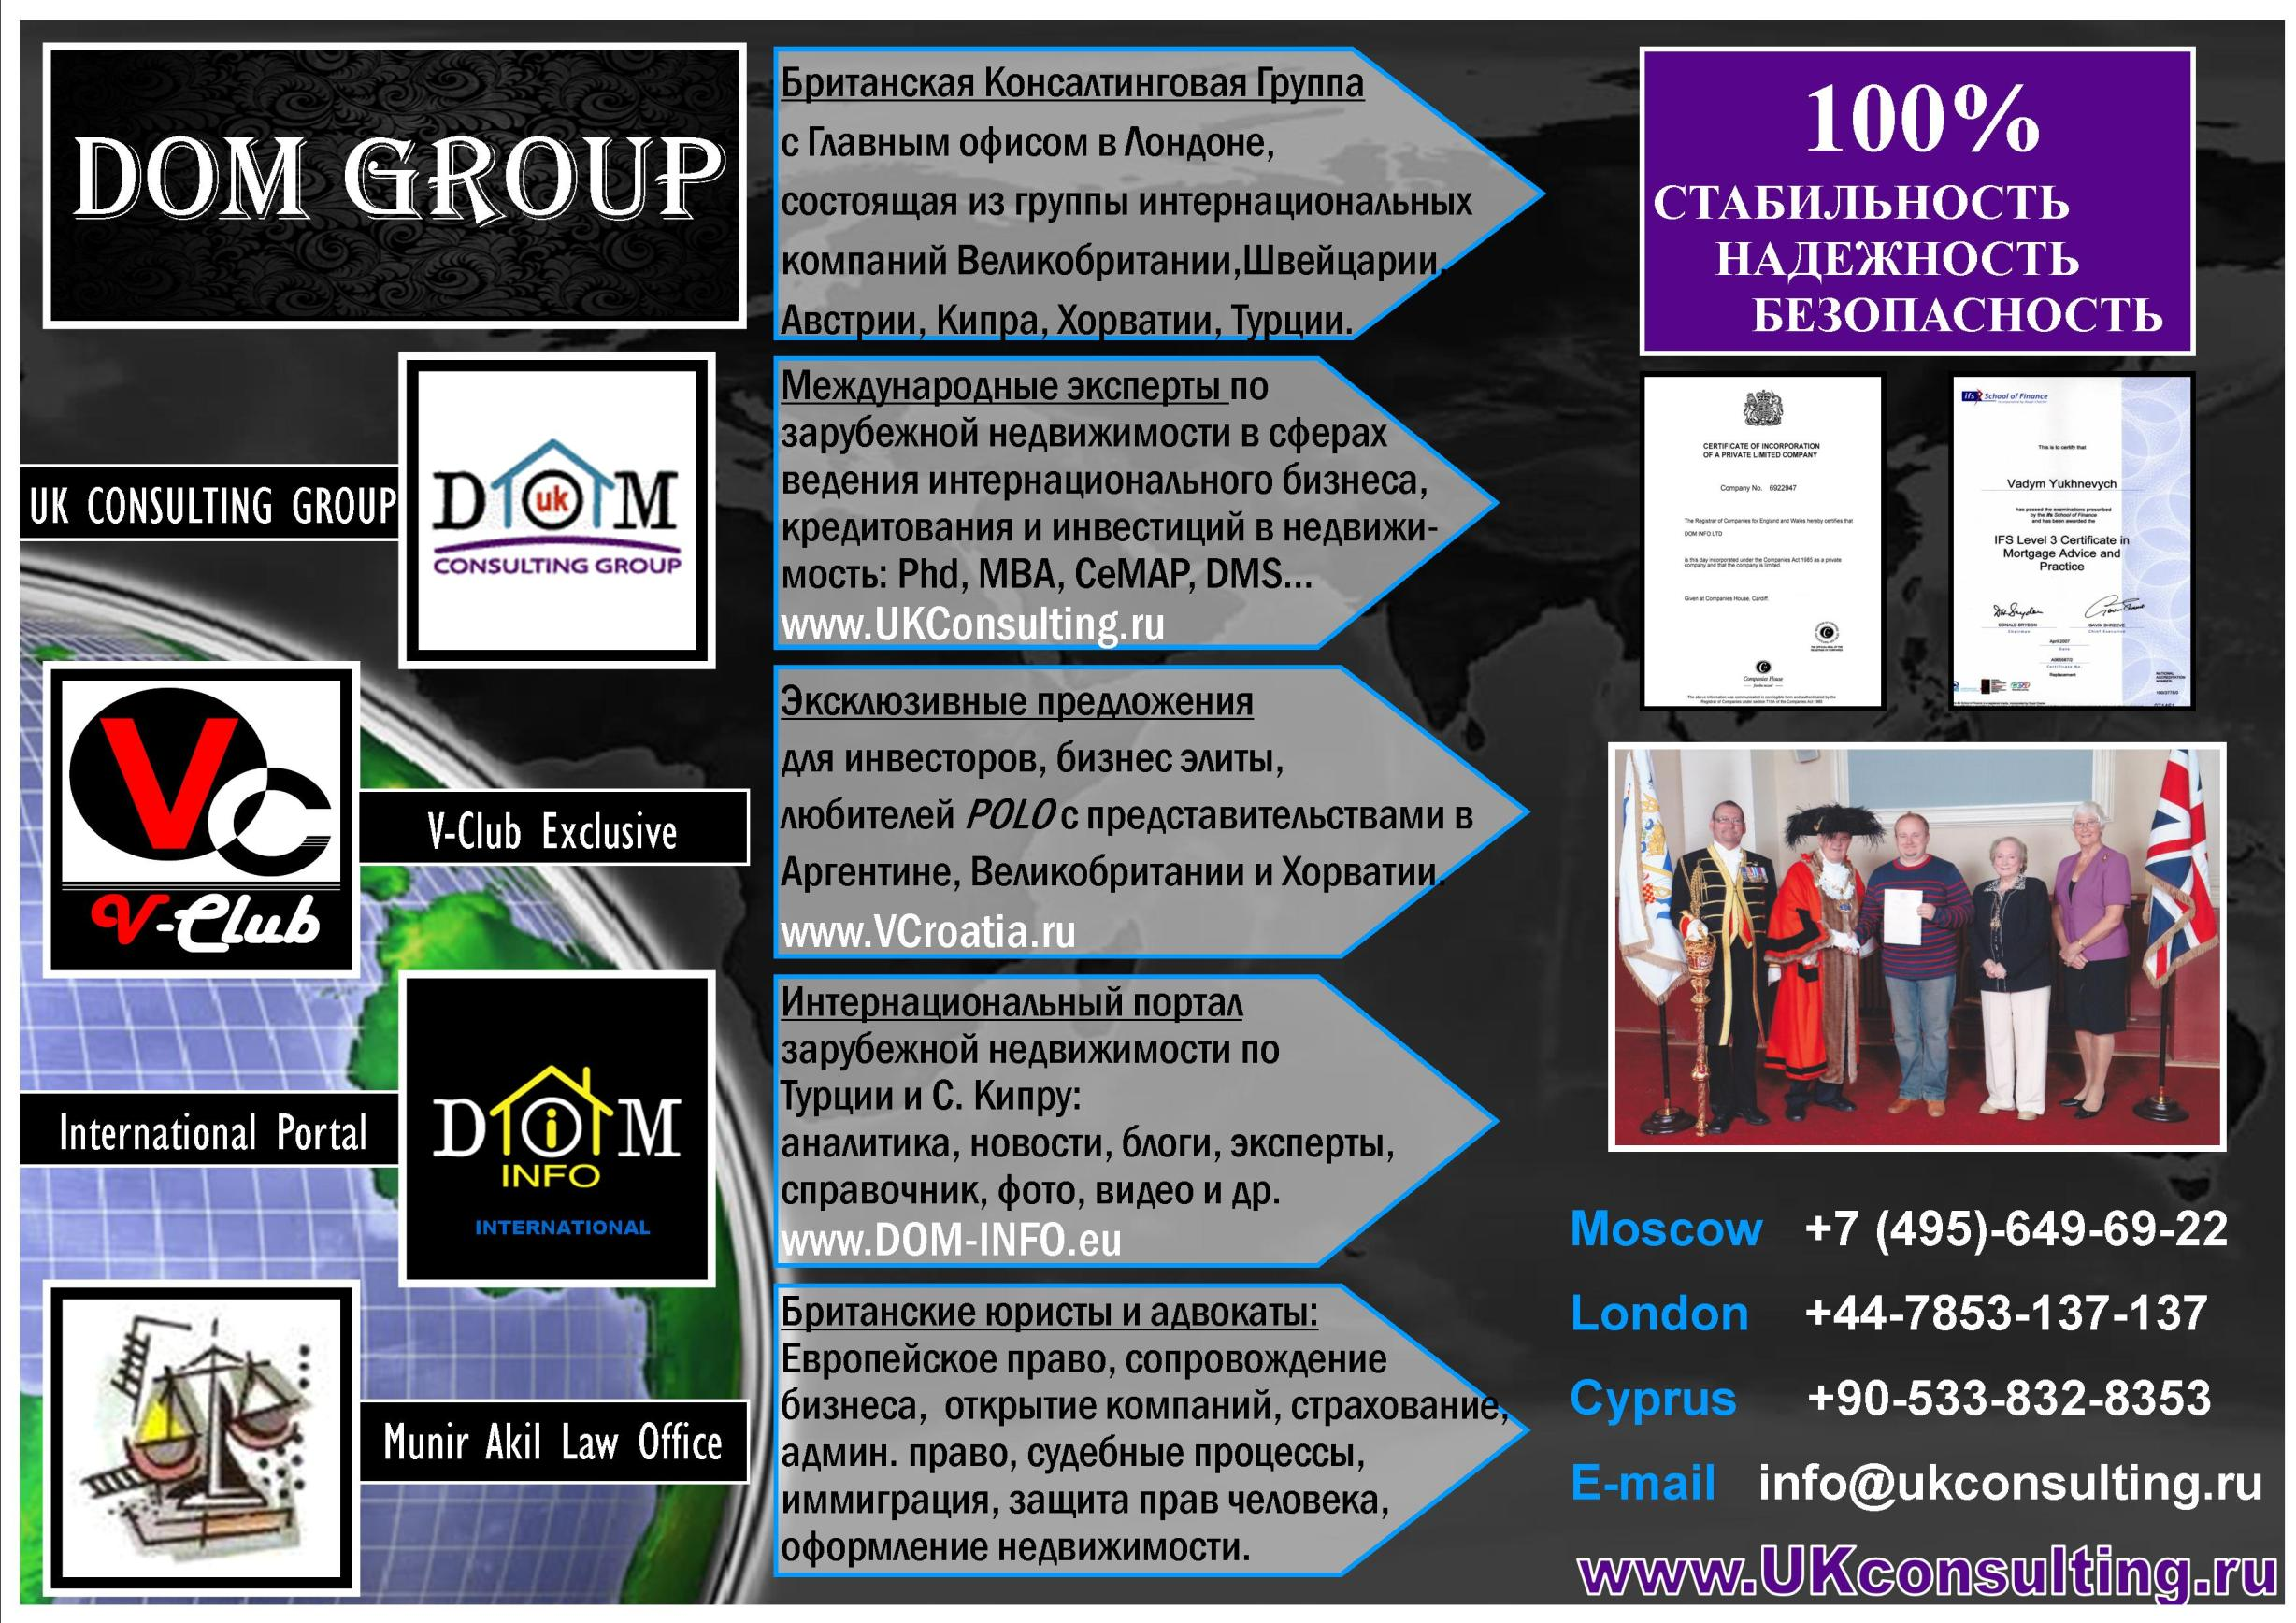 UK Consulting Group DOM-INFO